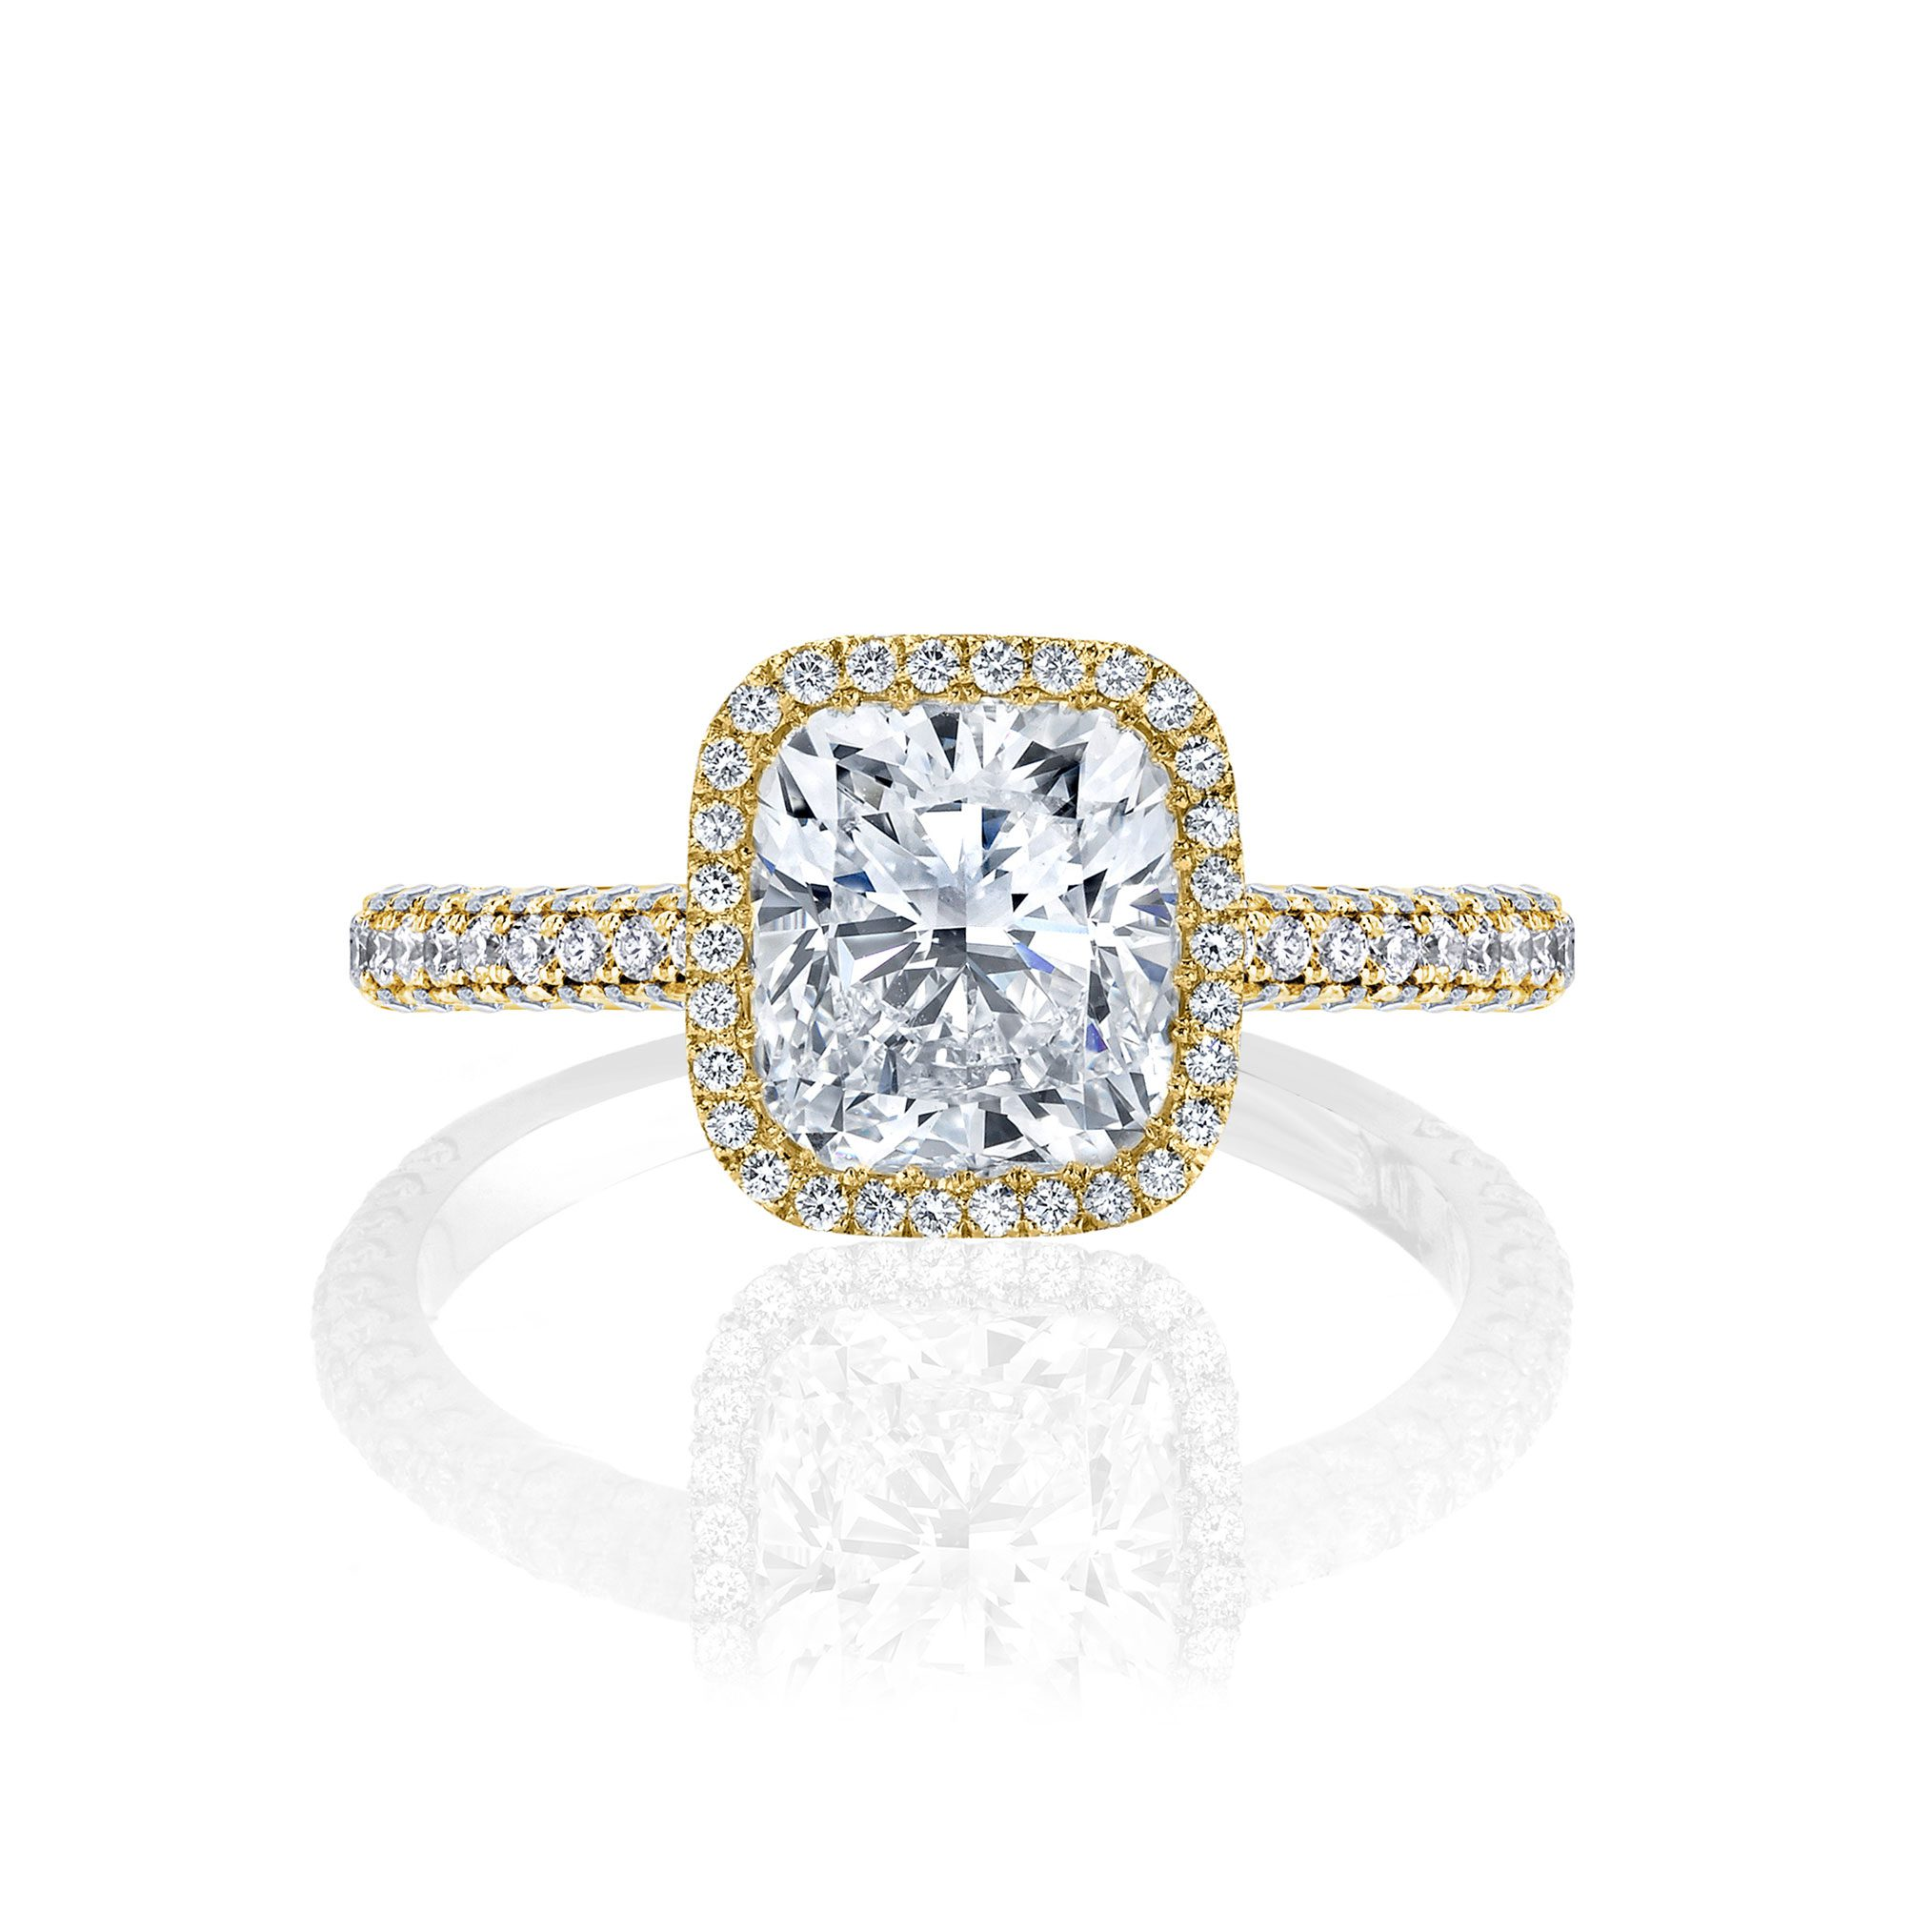 Jacqueline Seamless Halo® Engagement Ring with Lab Grown Cushion Cut Diamond in 18k yellow gold